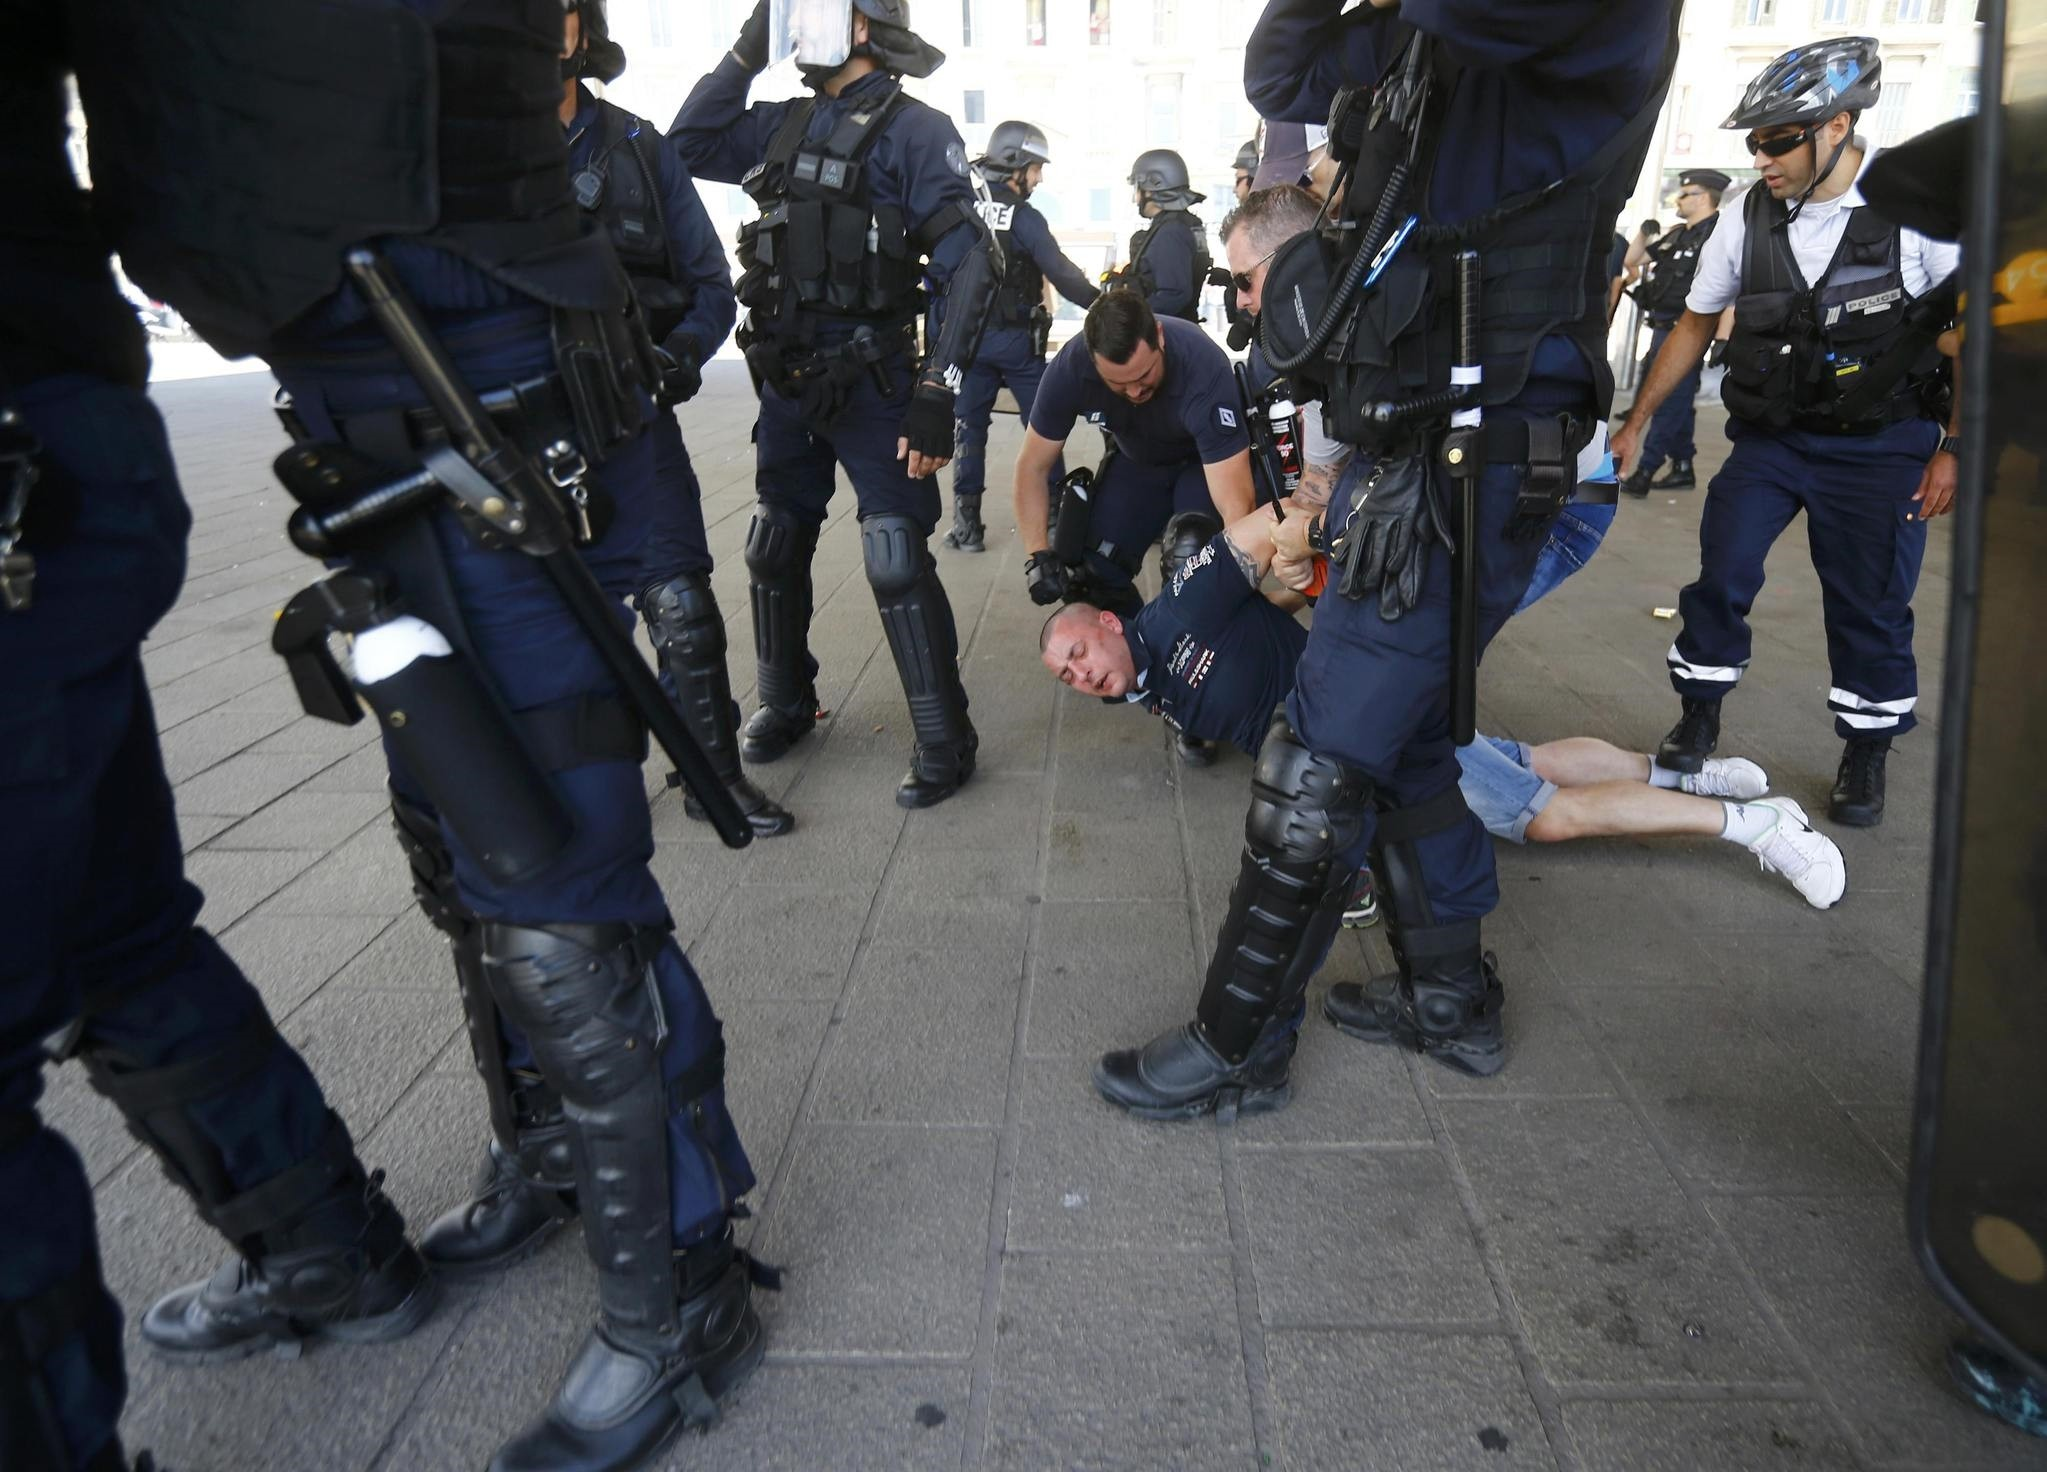 A Poland fan is detained by police at the old port of Marseille, France. (Reuters Photo)